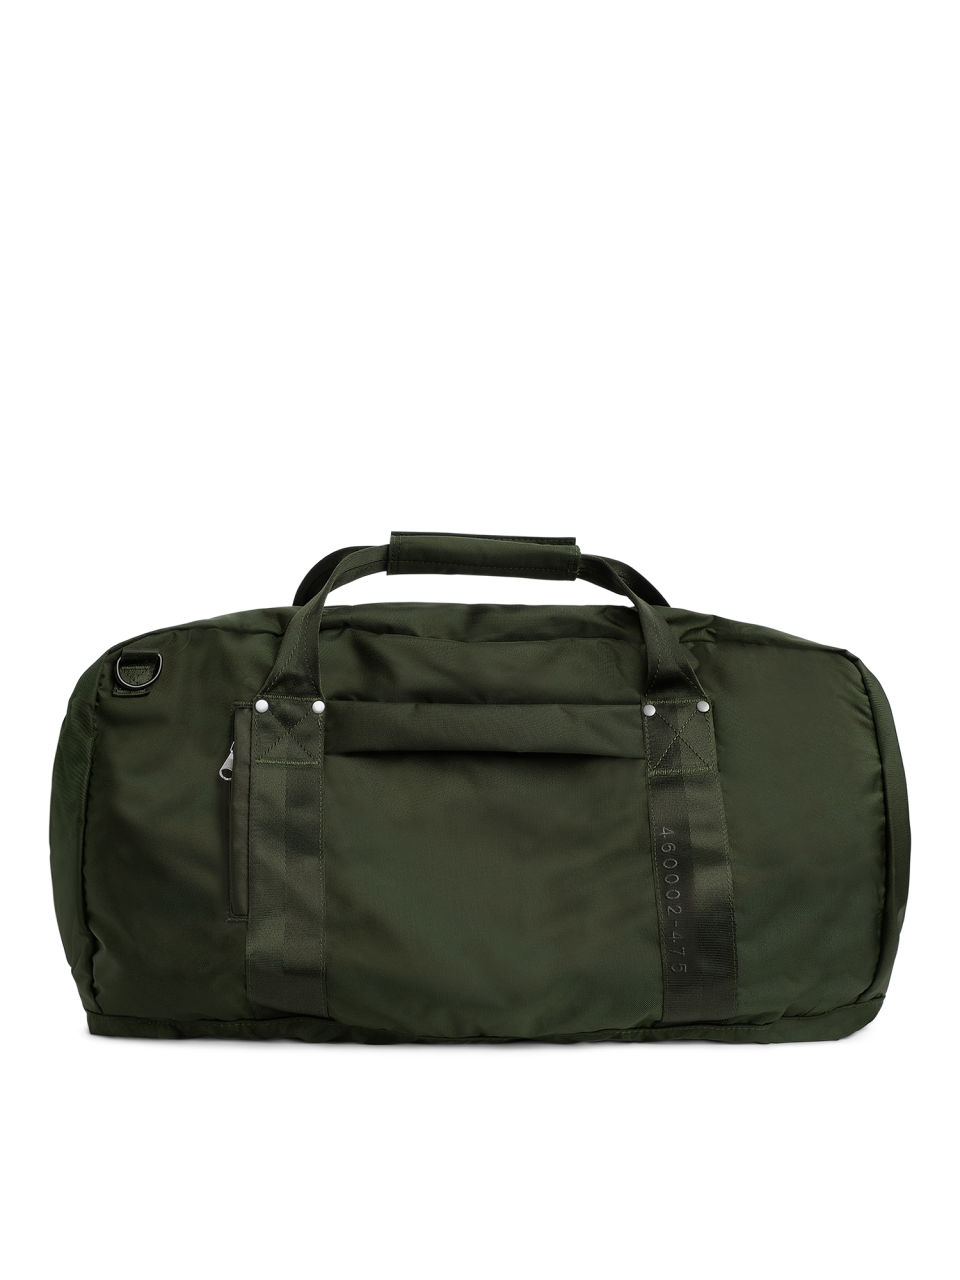 e1a9c5db3a 72-Hour 3-Way Duffle - Dark Green - Travel - ARKET